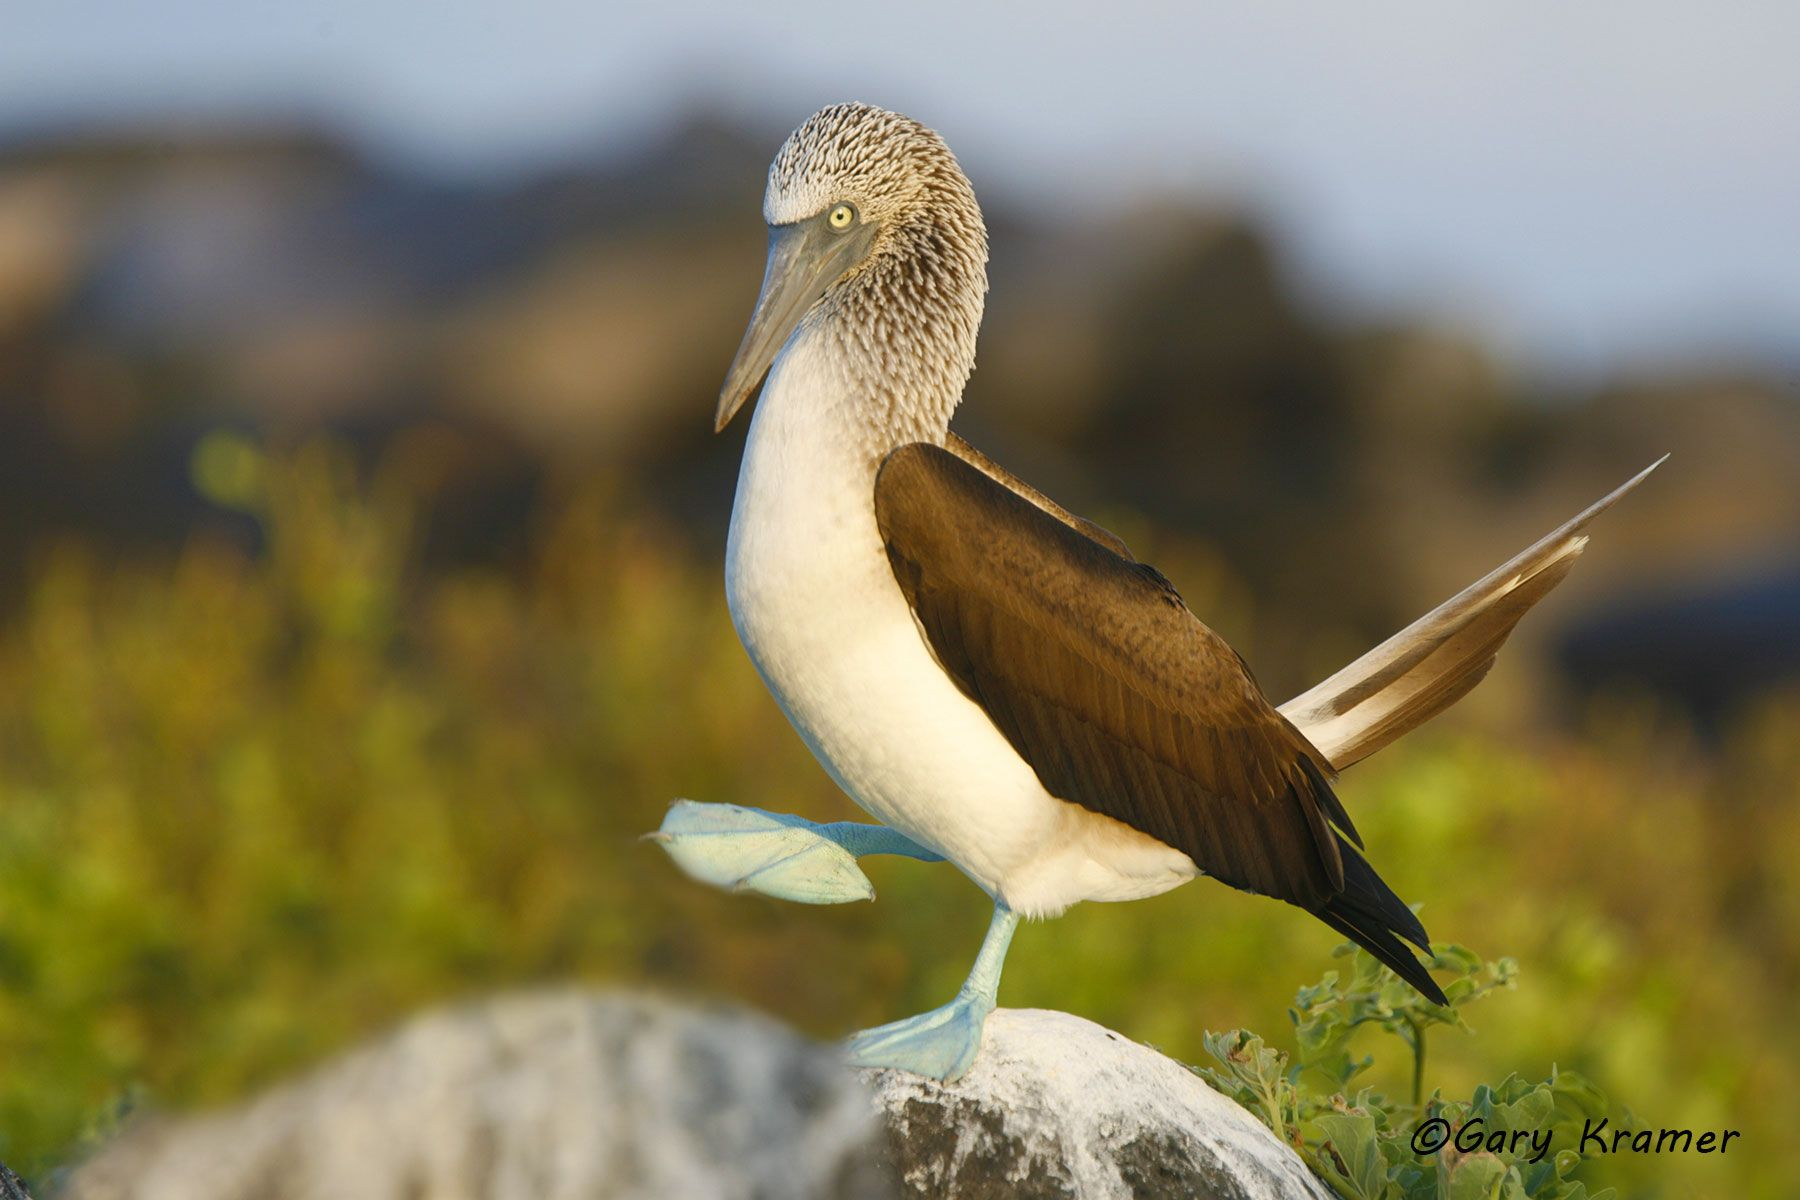 Blue-footed Booby (Sula nebouxii) - NBBB#016d.jpg